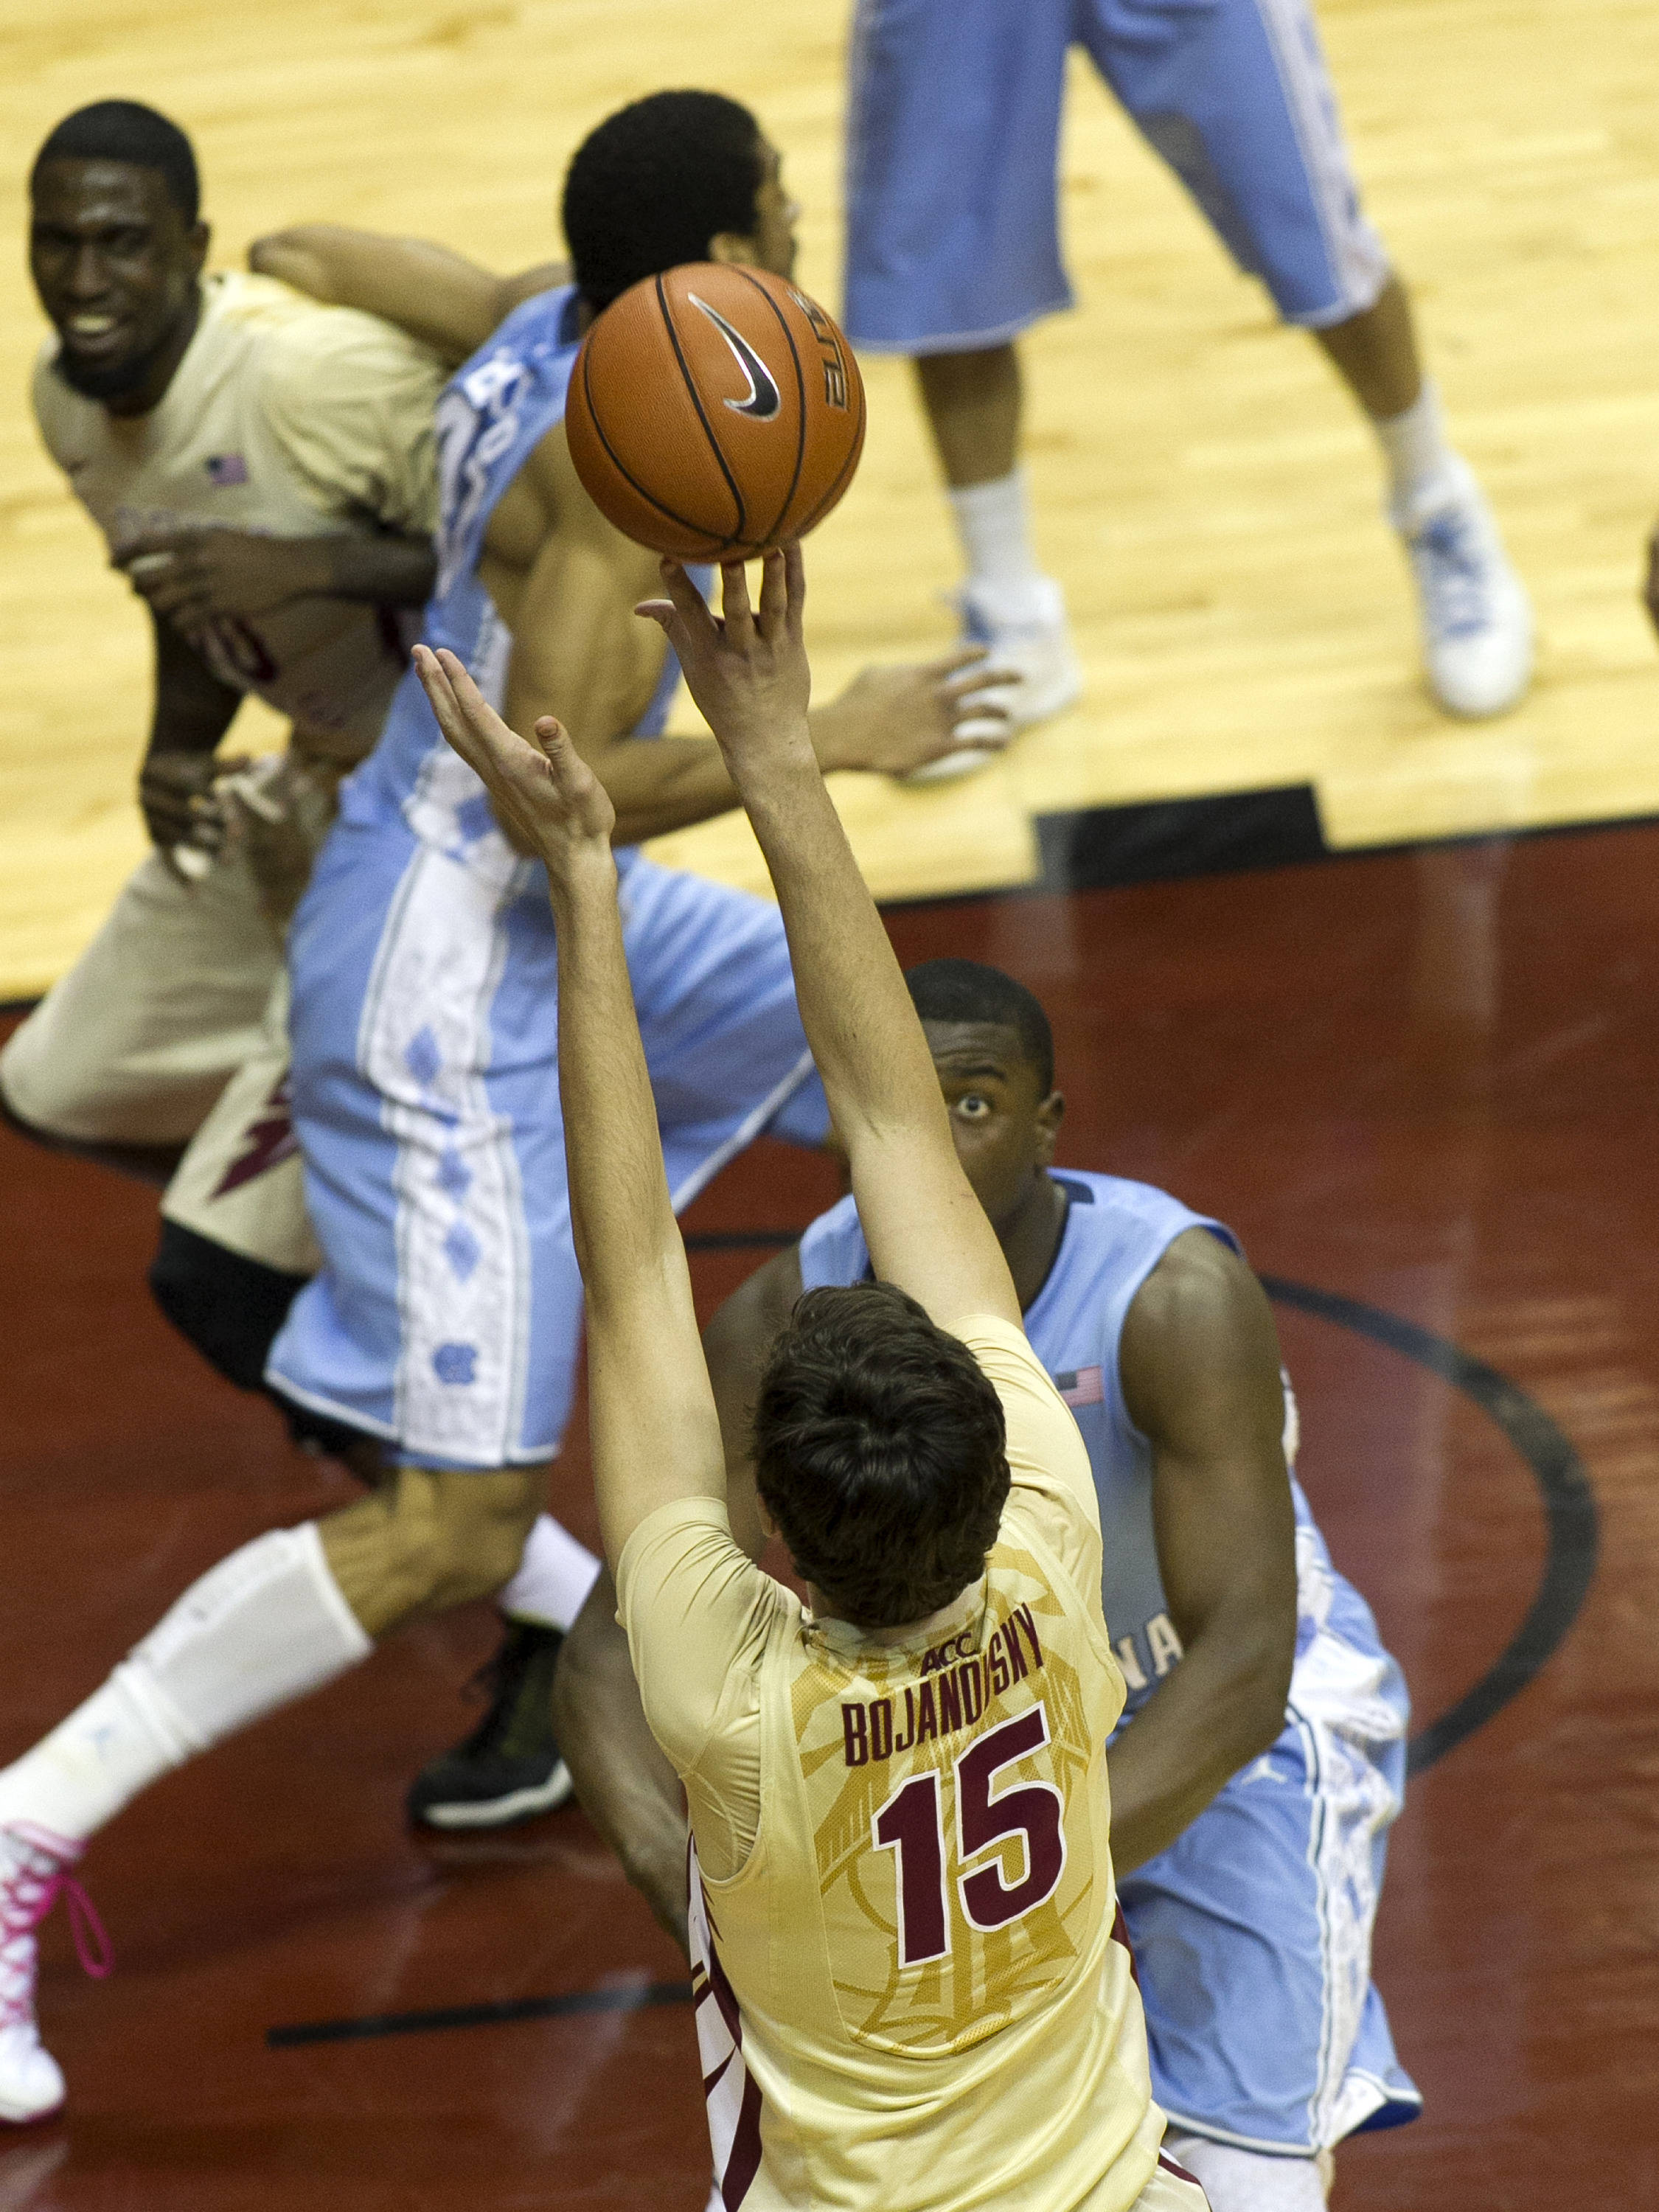 Boris Bojanovsky (15) releasing his jumper, FSU vs North Carolina, 2-17-14, (Photo's by Steve Musco)